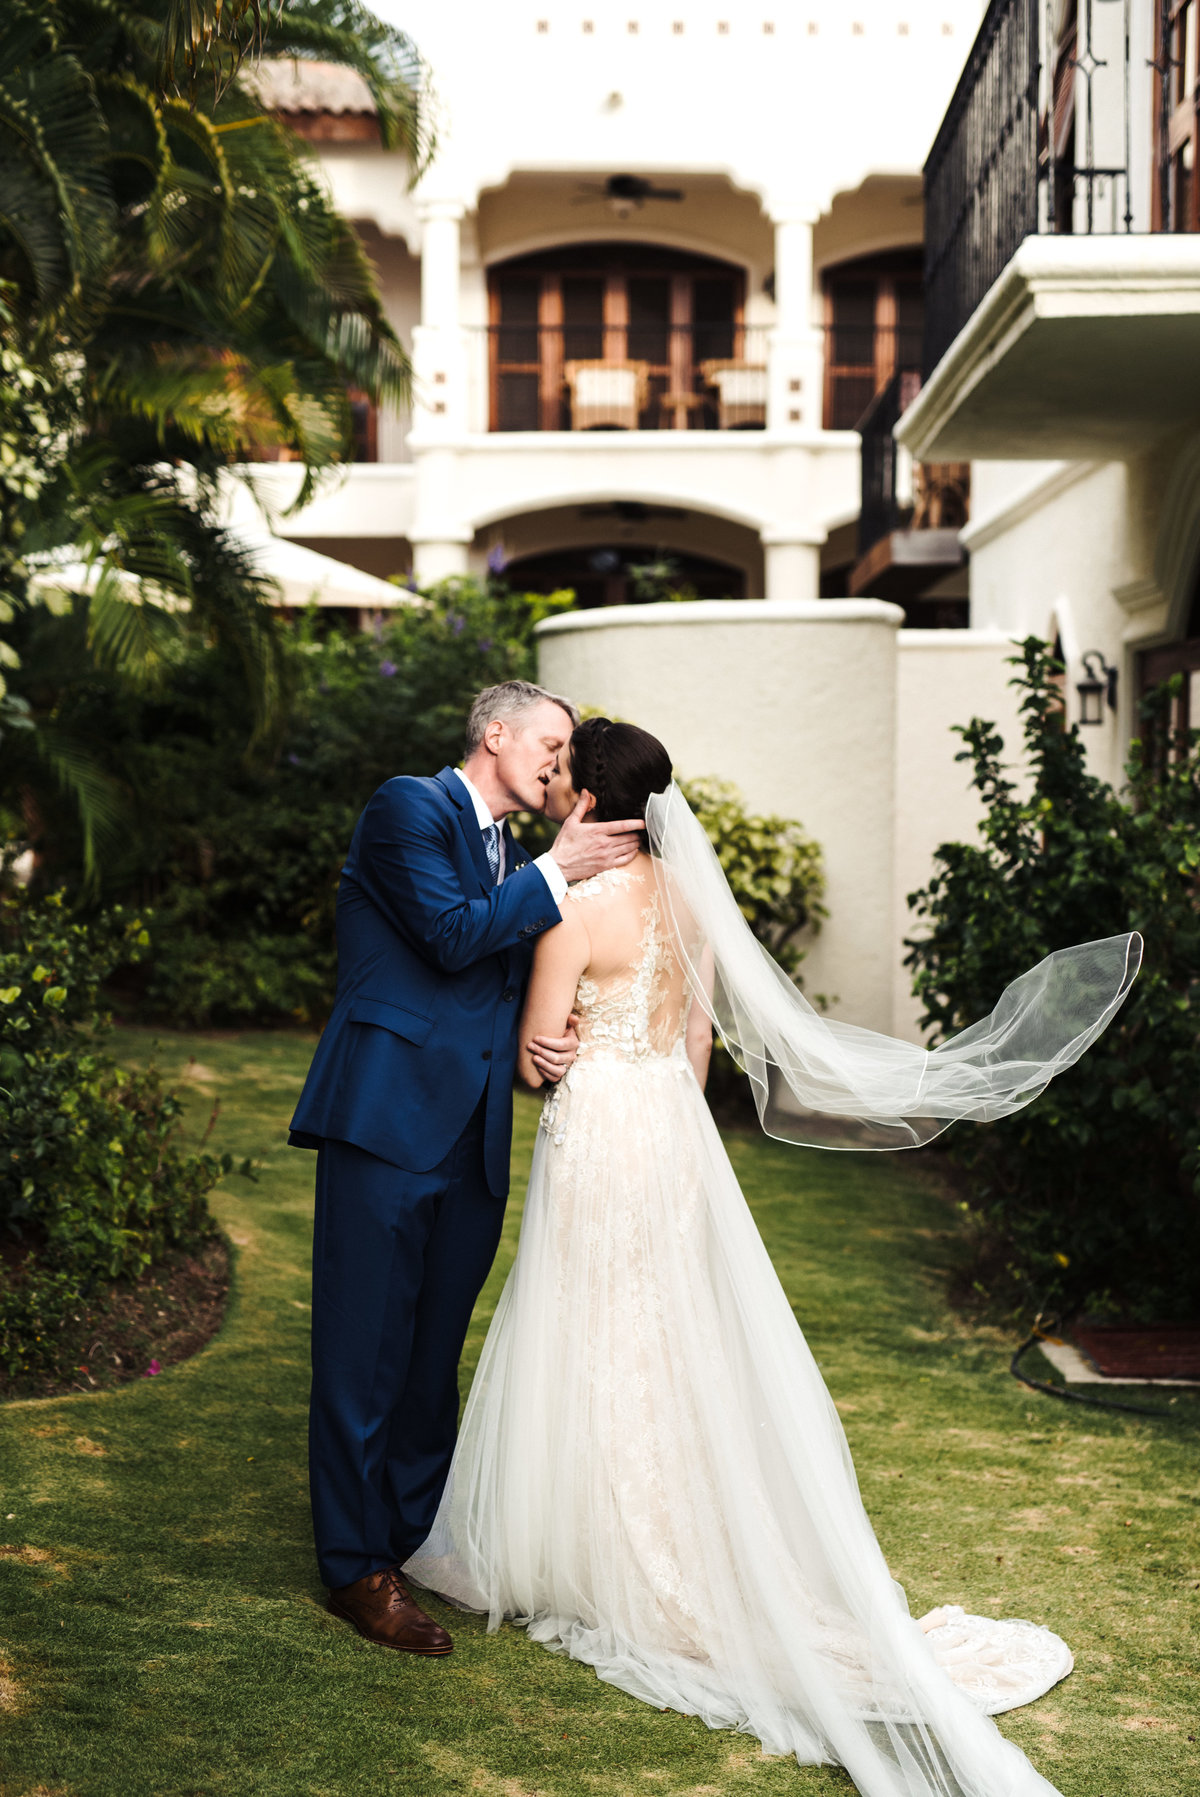 Cap Maison St Lucia Destination Wedding - 185